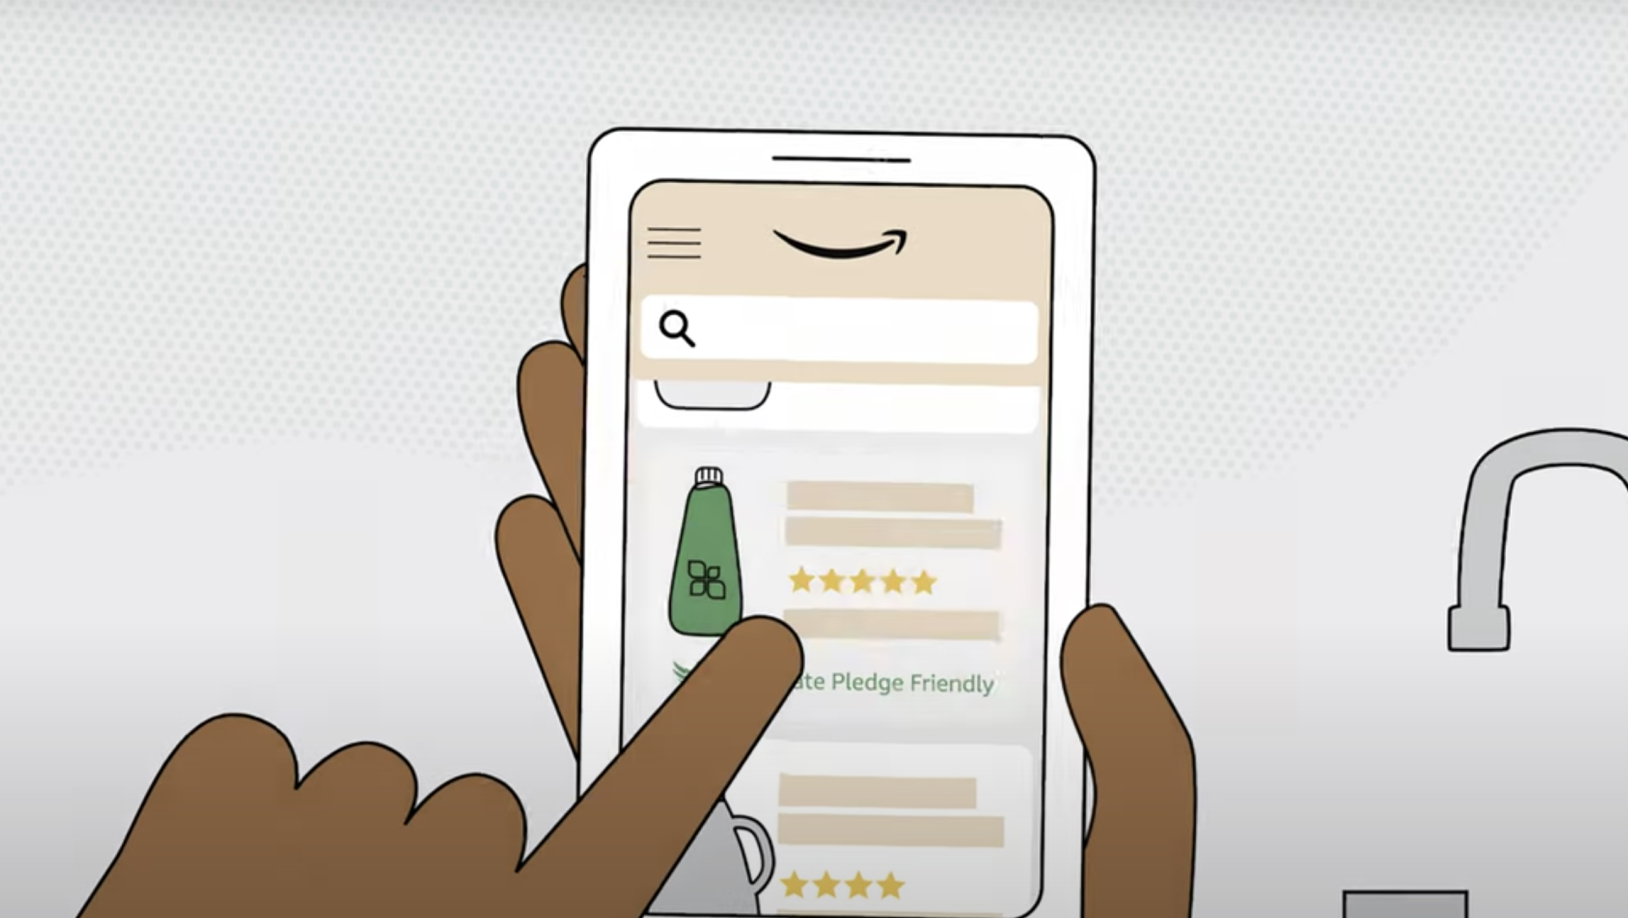 Sustainable Shopping, showing easy online shopping from phone